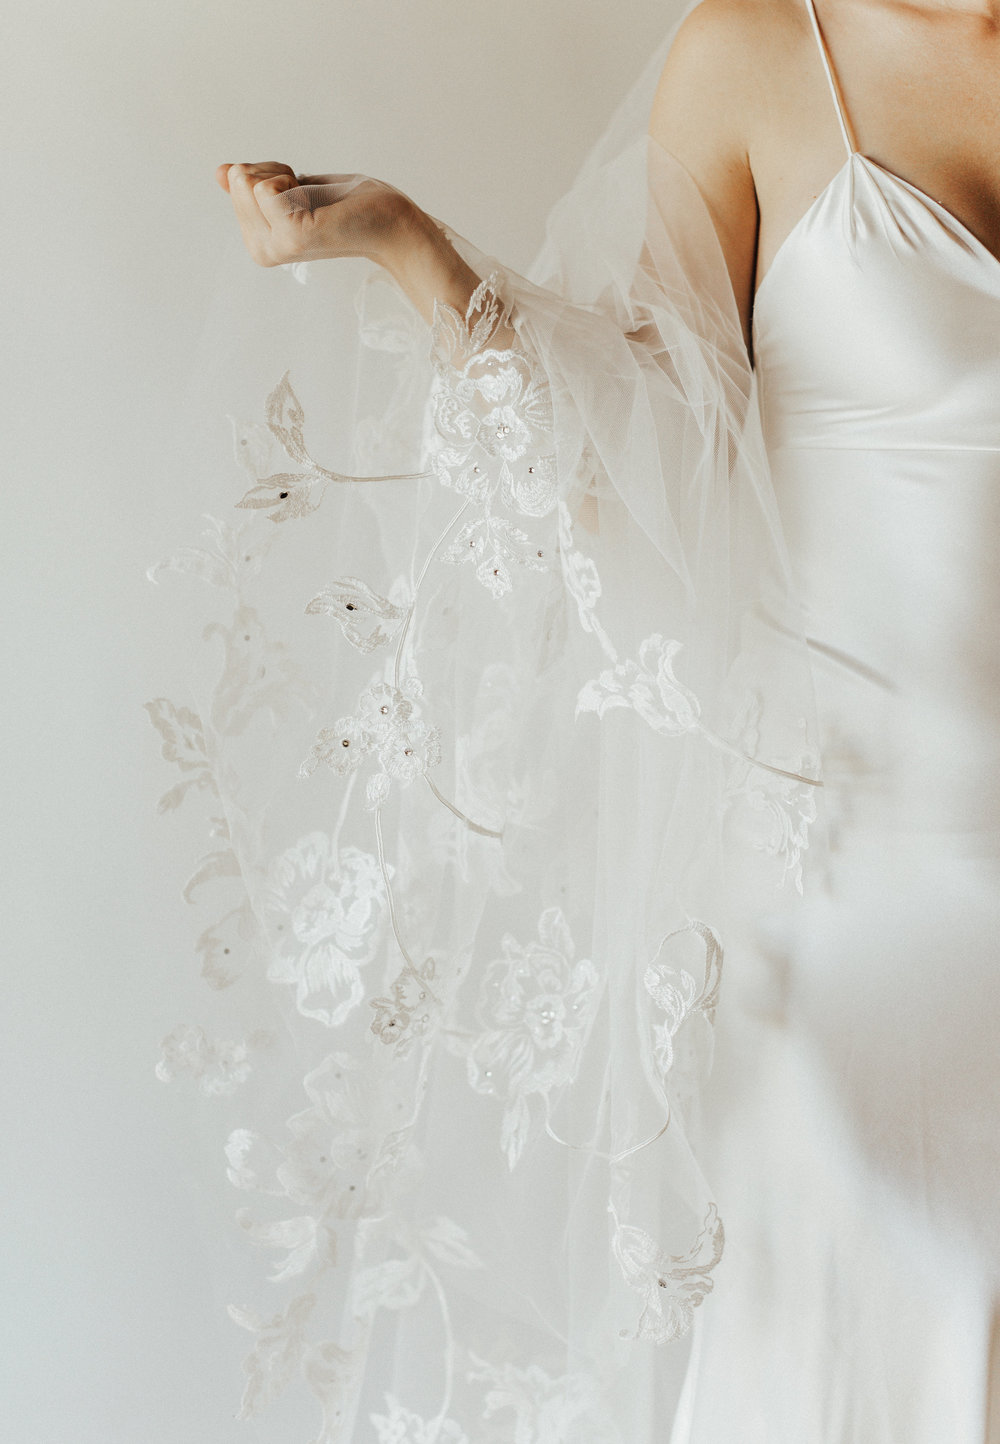 Ojai Veil   Details- Floral embroidery with a touch of sparkle  Available in Cathedral and ivory only